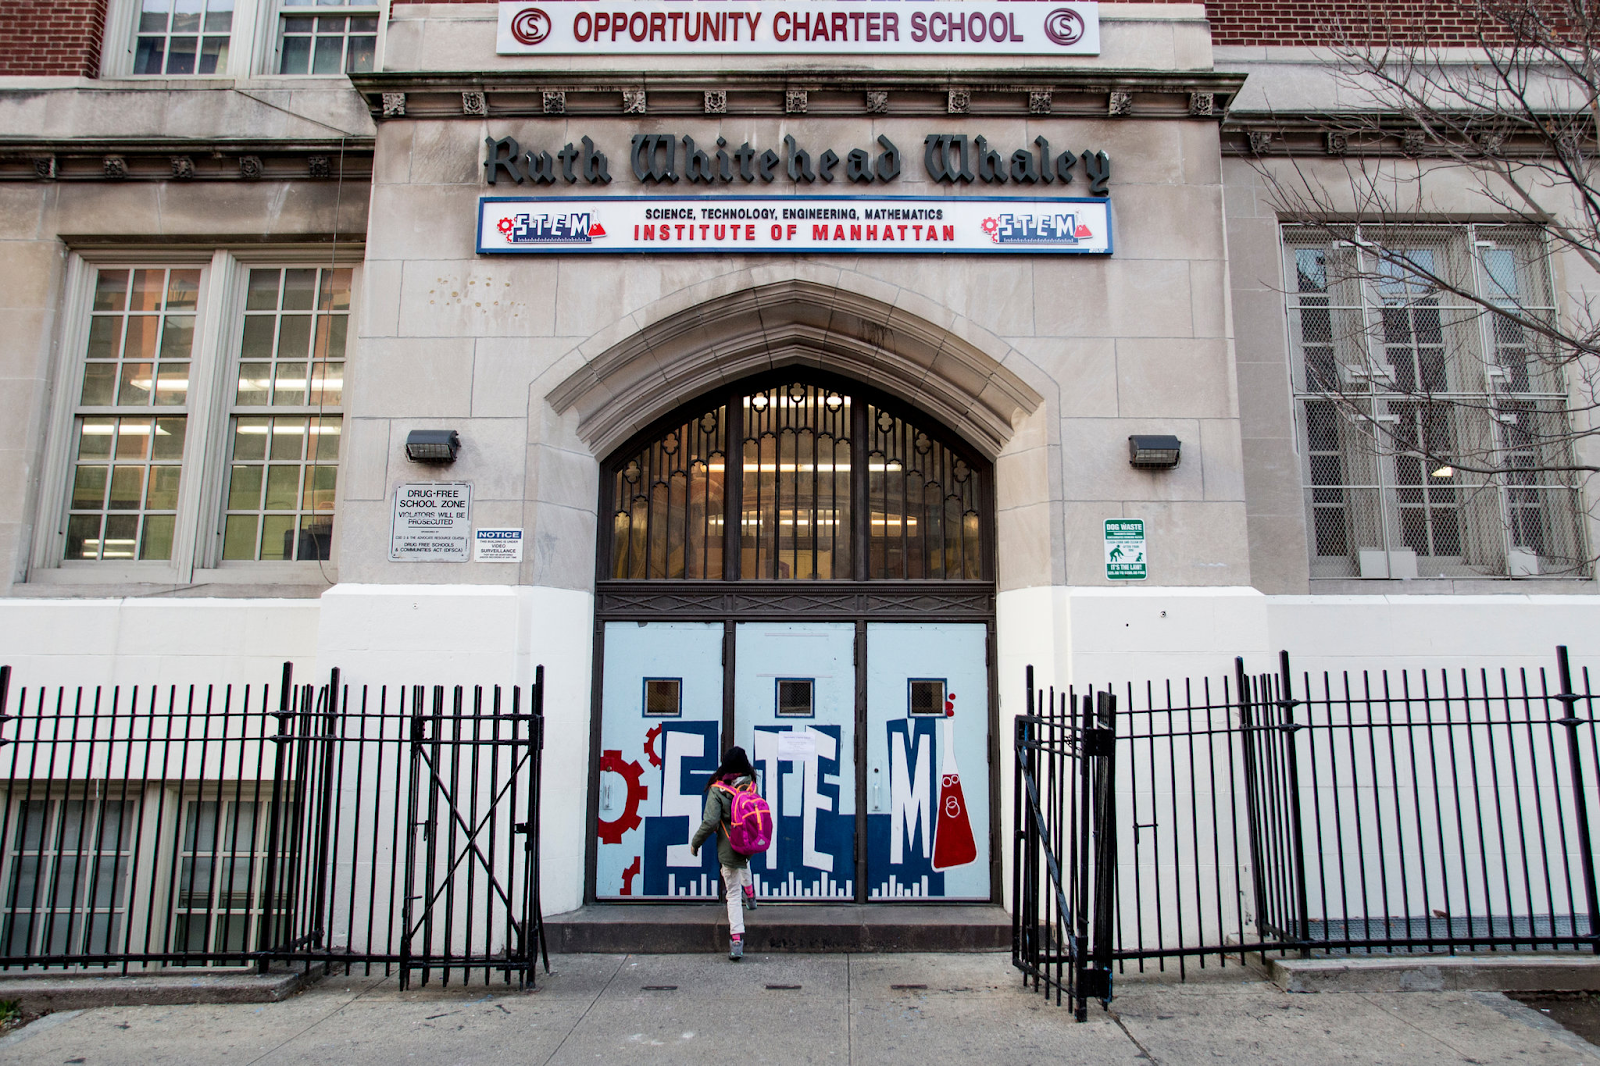 The picture depicts the entrance of the STEM Institute of Manhattan, with the doors closed.